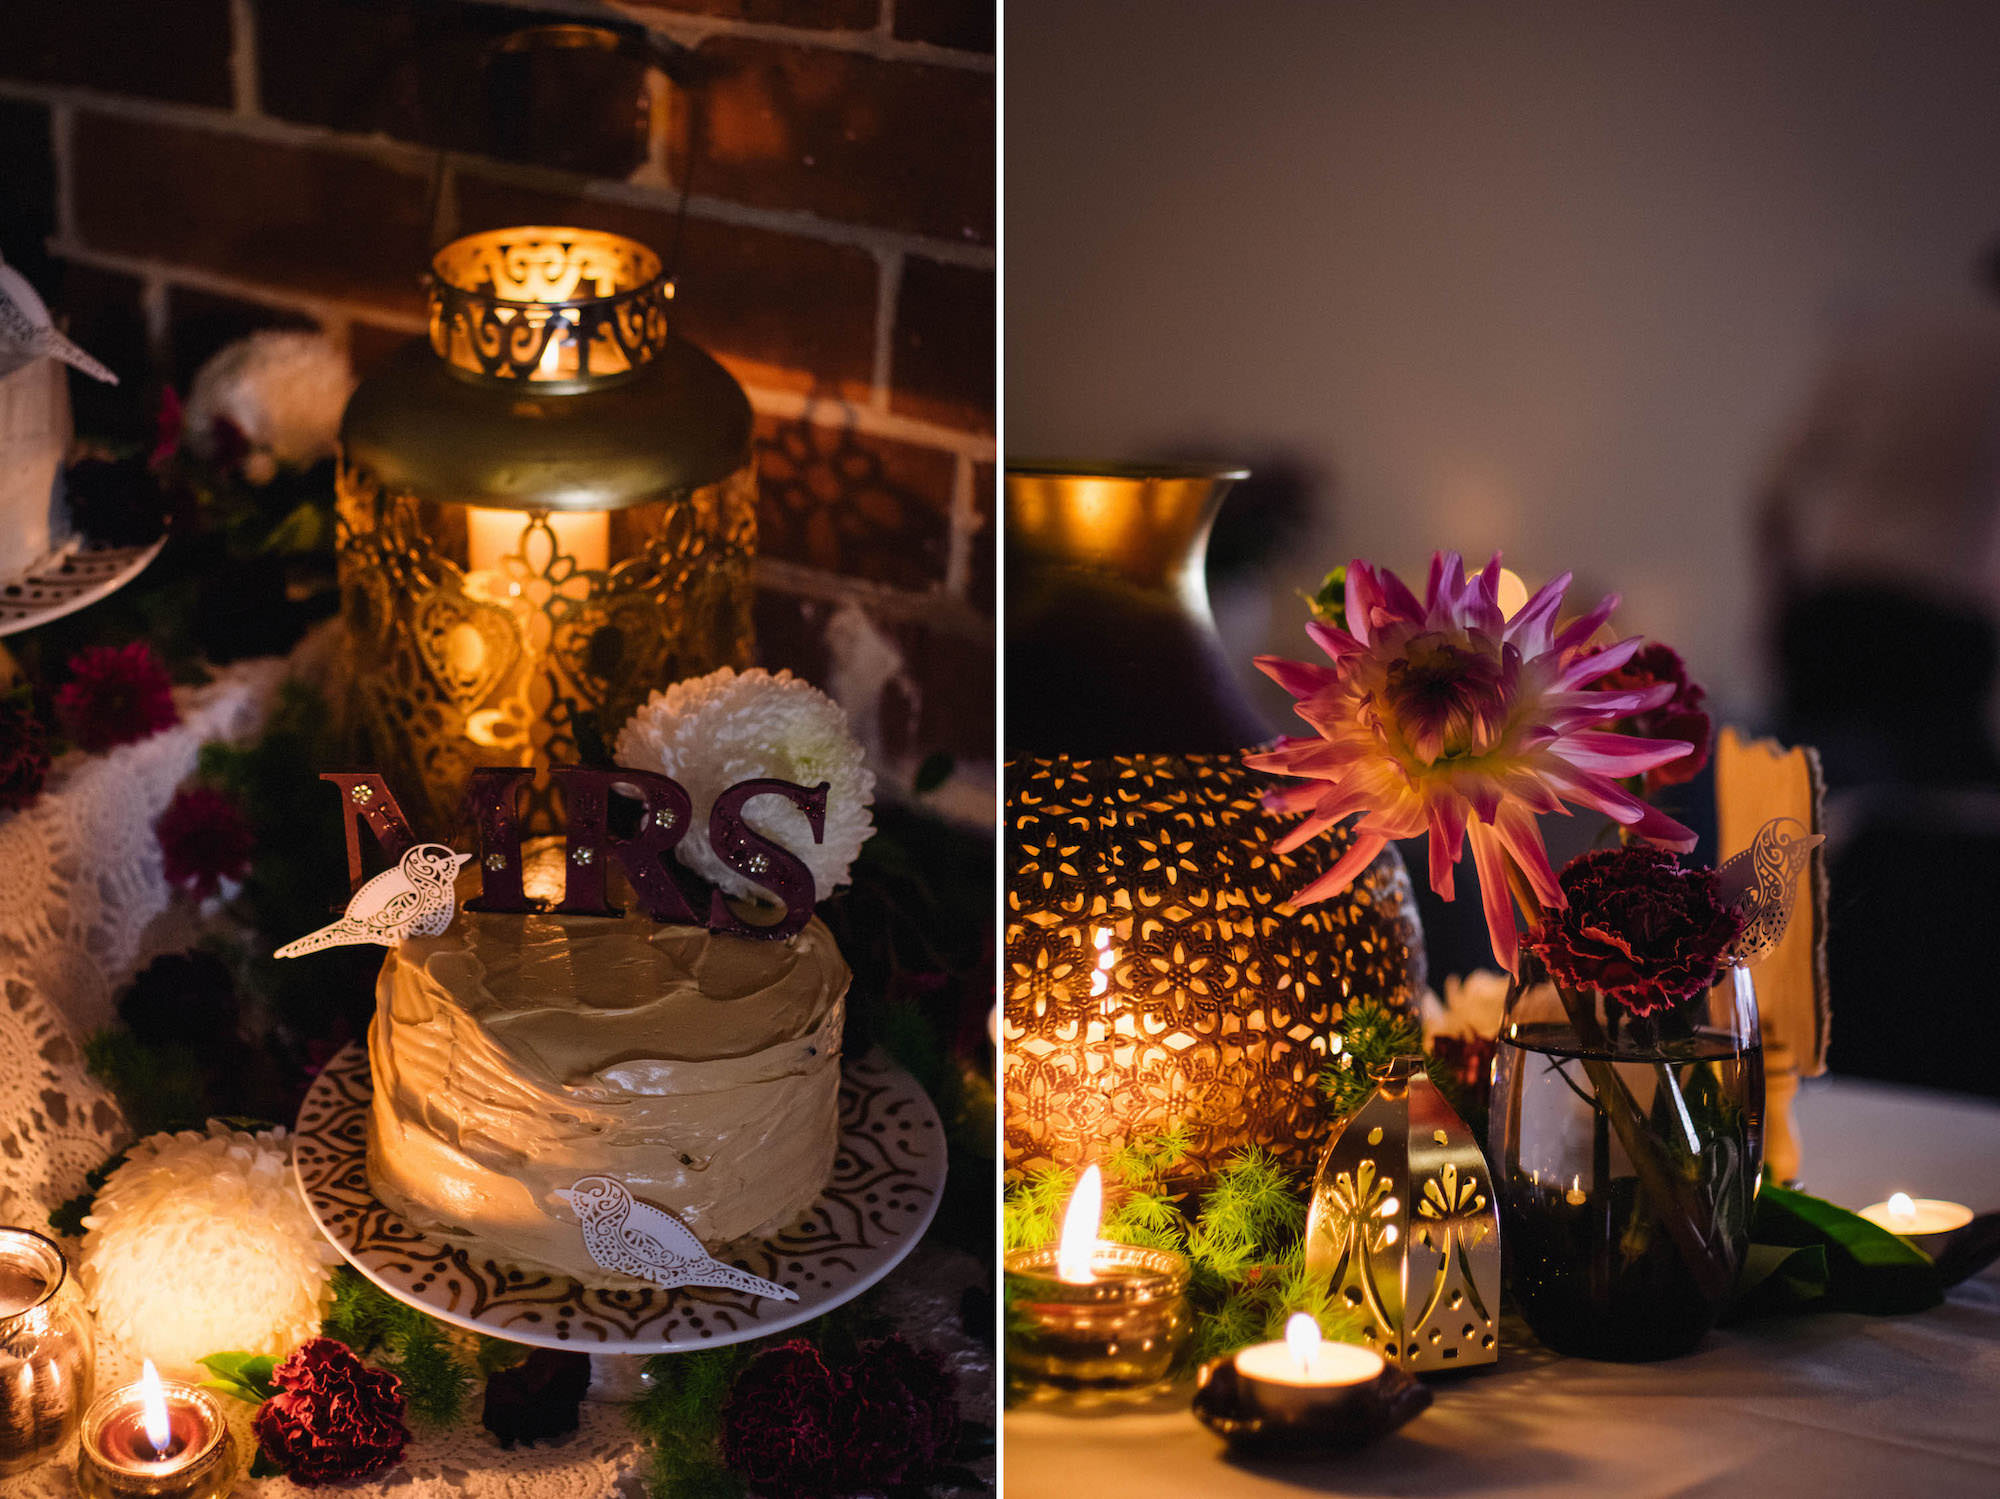 Cake & decoration details for Jibb & Tripthi's international wedding at St Matthew's Anglican Church, Subiaco